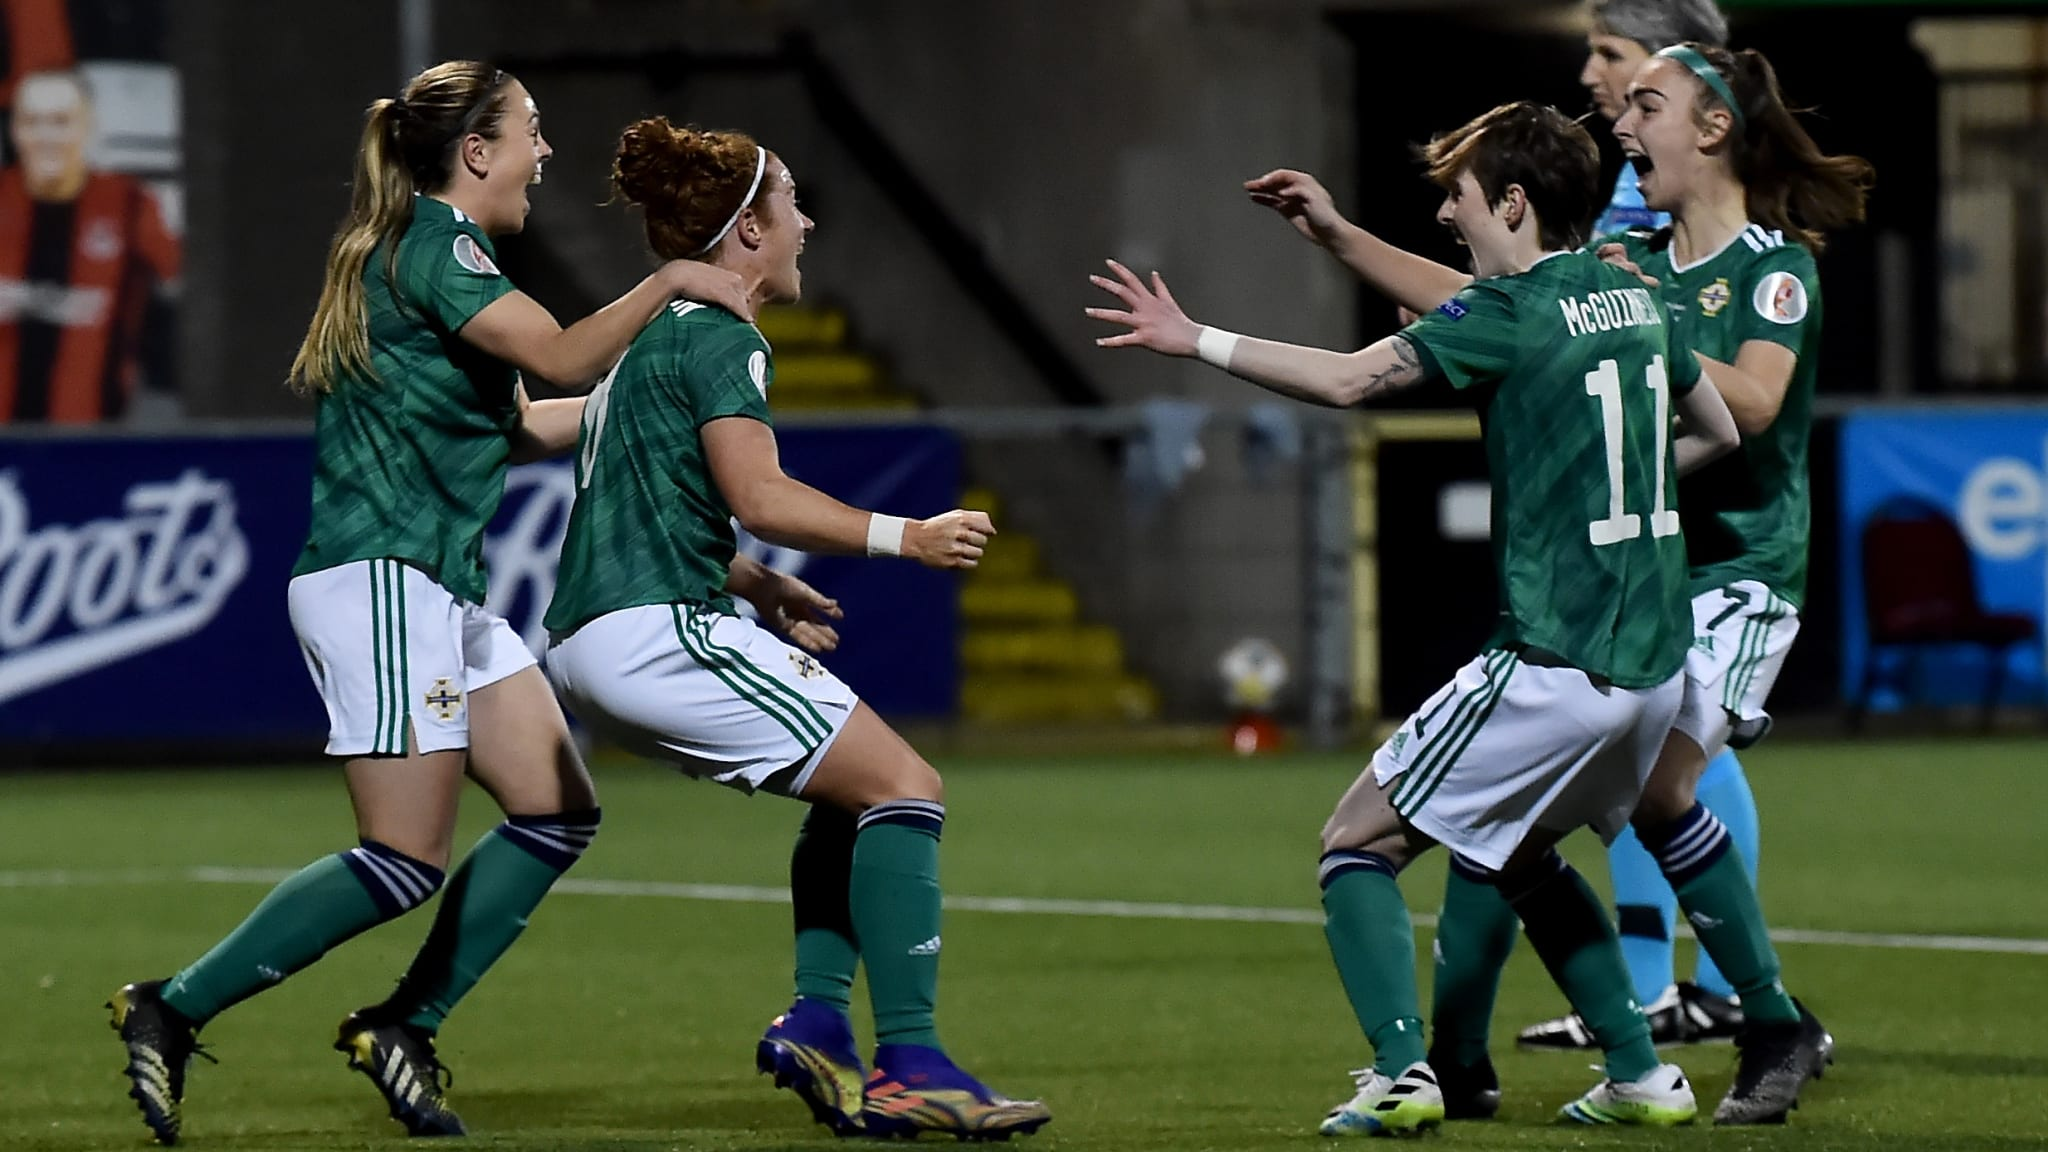 Marissa Callaghan of Northern Ireland celebrates with teammates after scoring their team's first goal during the UEFA Women's Euro 2022 Play-off match between Northern Ireland and Ukraine at Seaview on April 13, 2021 in Belfast, Northern Ireland.